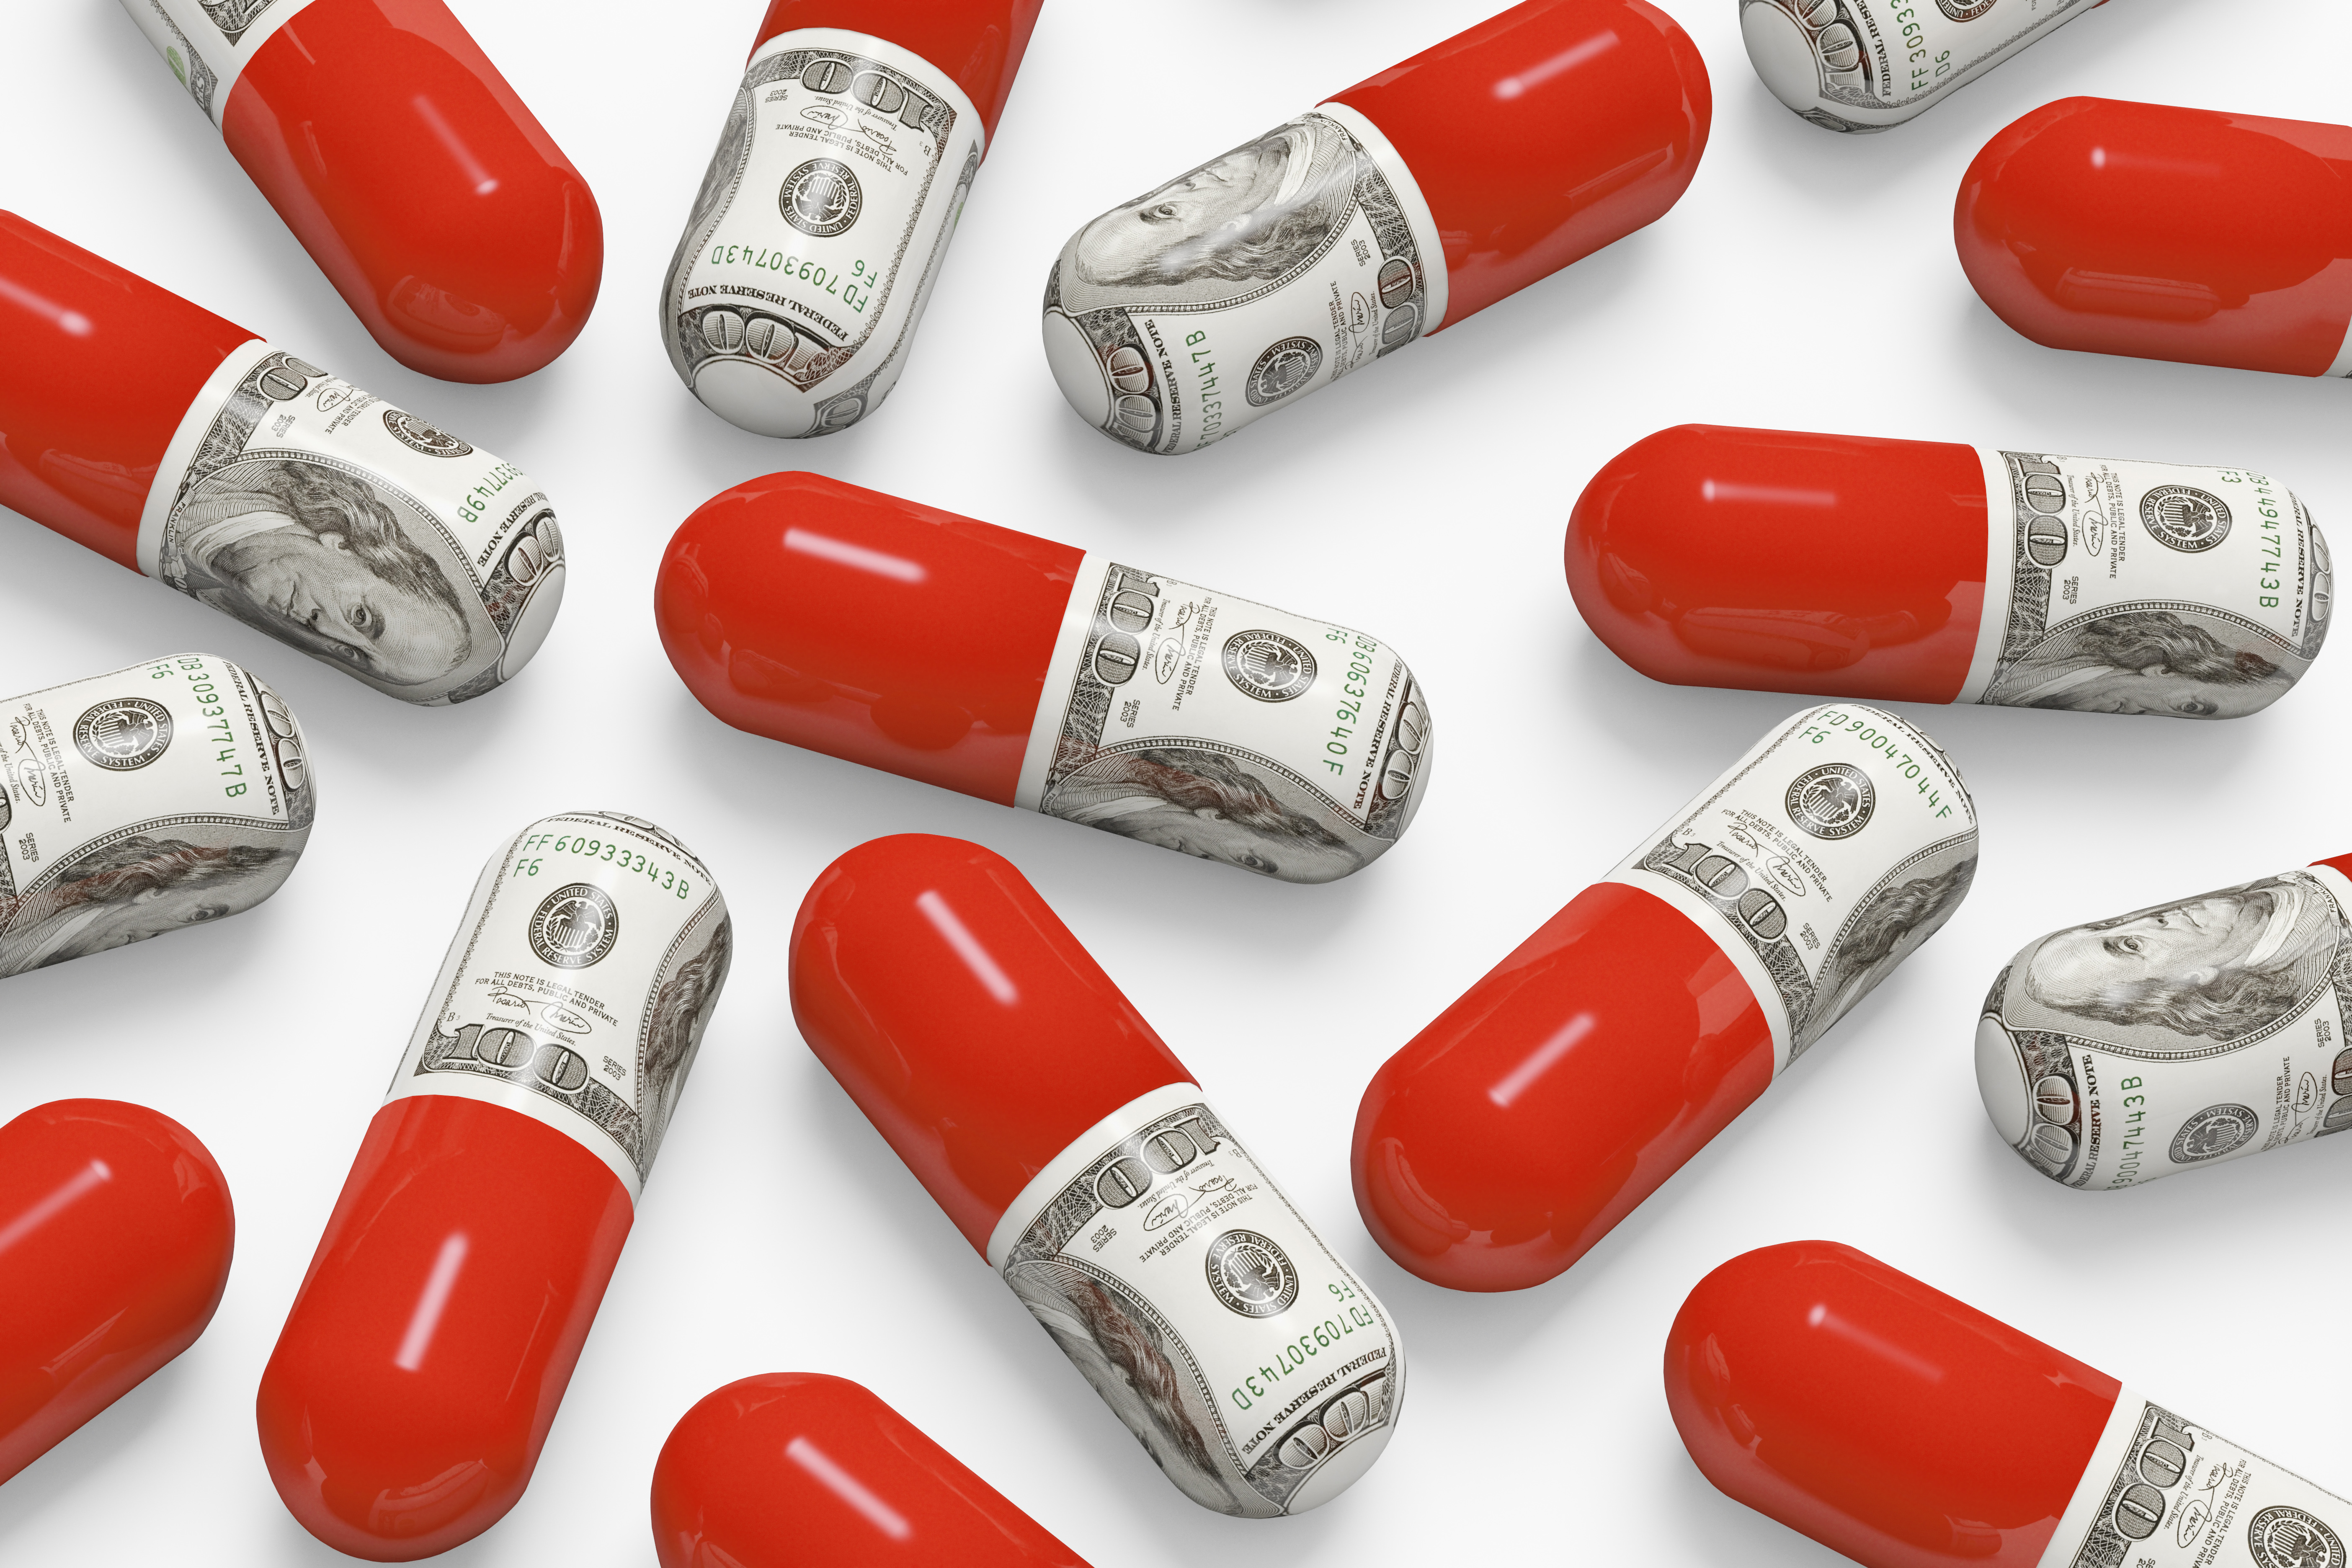 An illustration of pills decorated with hundred-dollar bills.